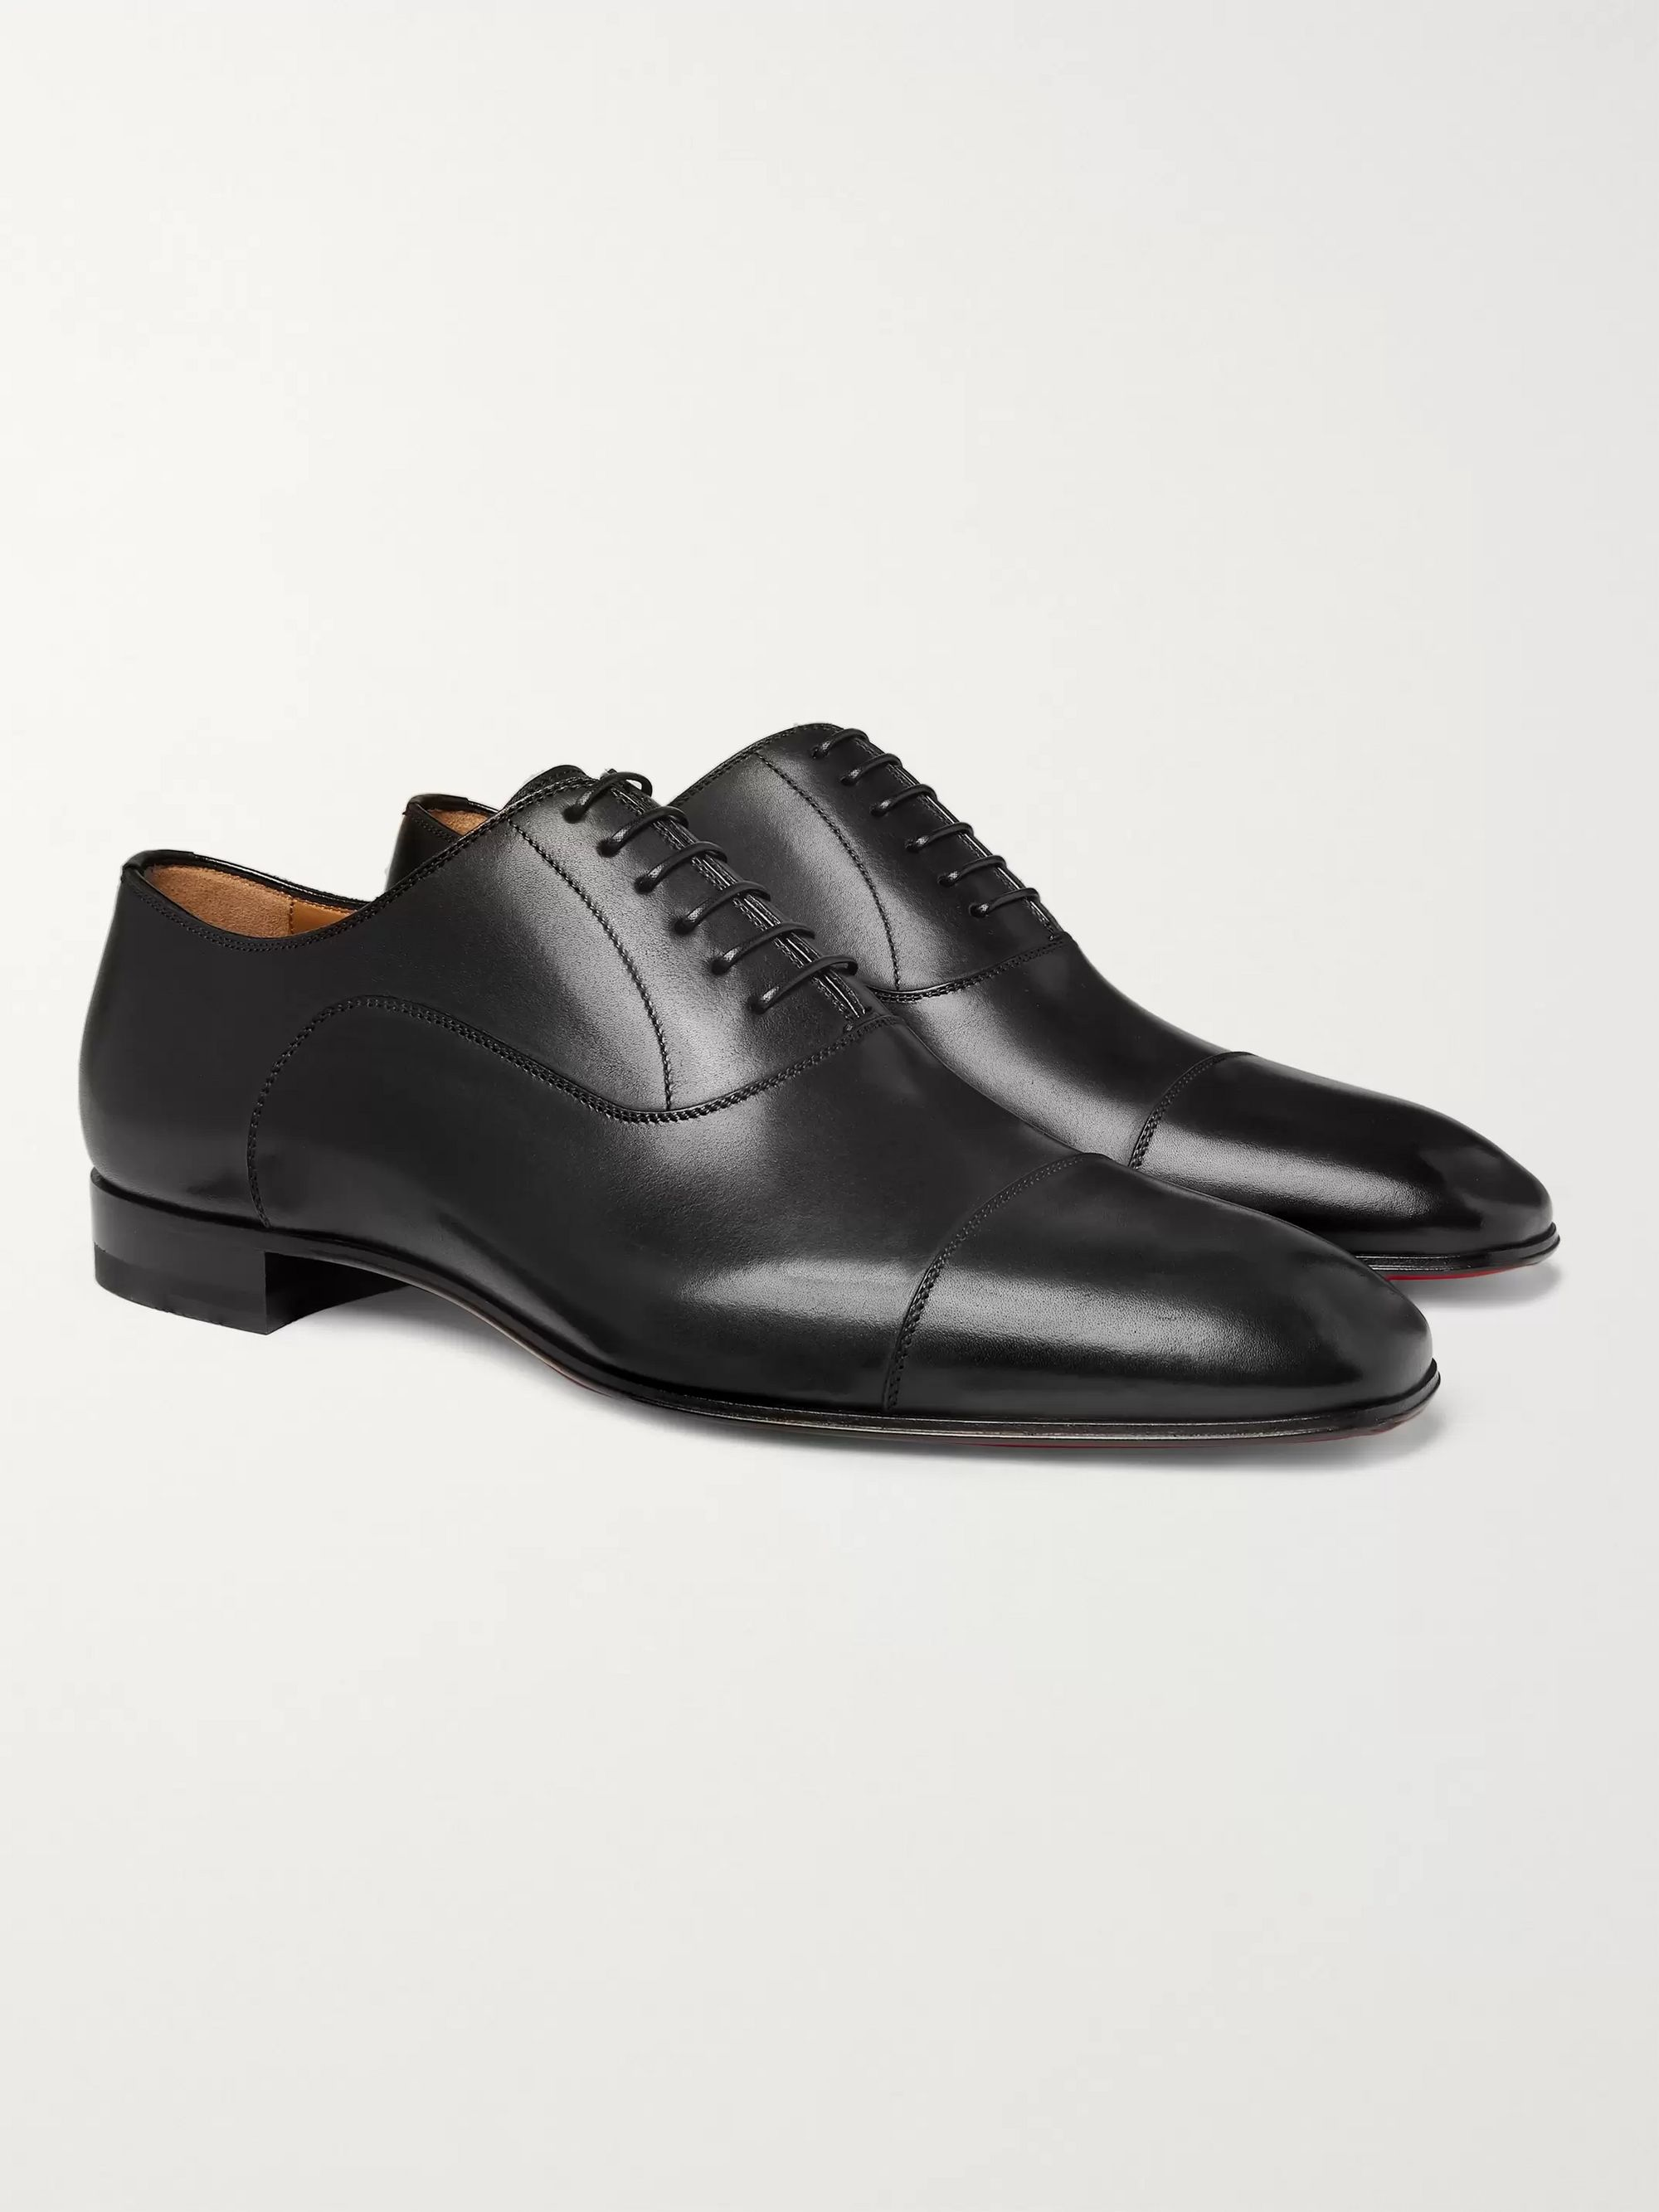 Greggo Leather Oxford Shoes by Christian Louboutin